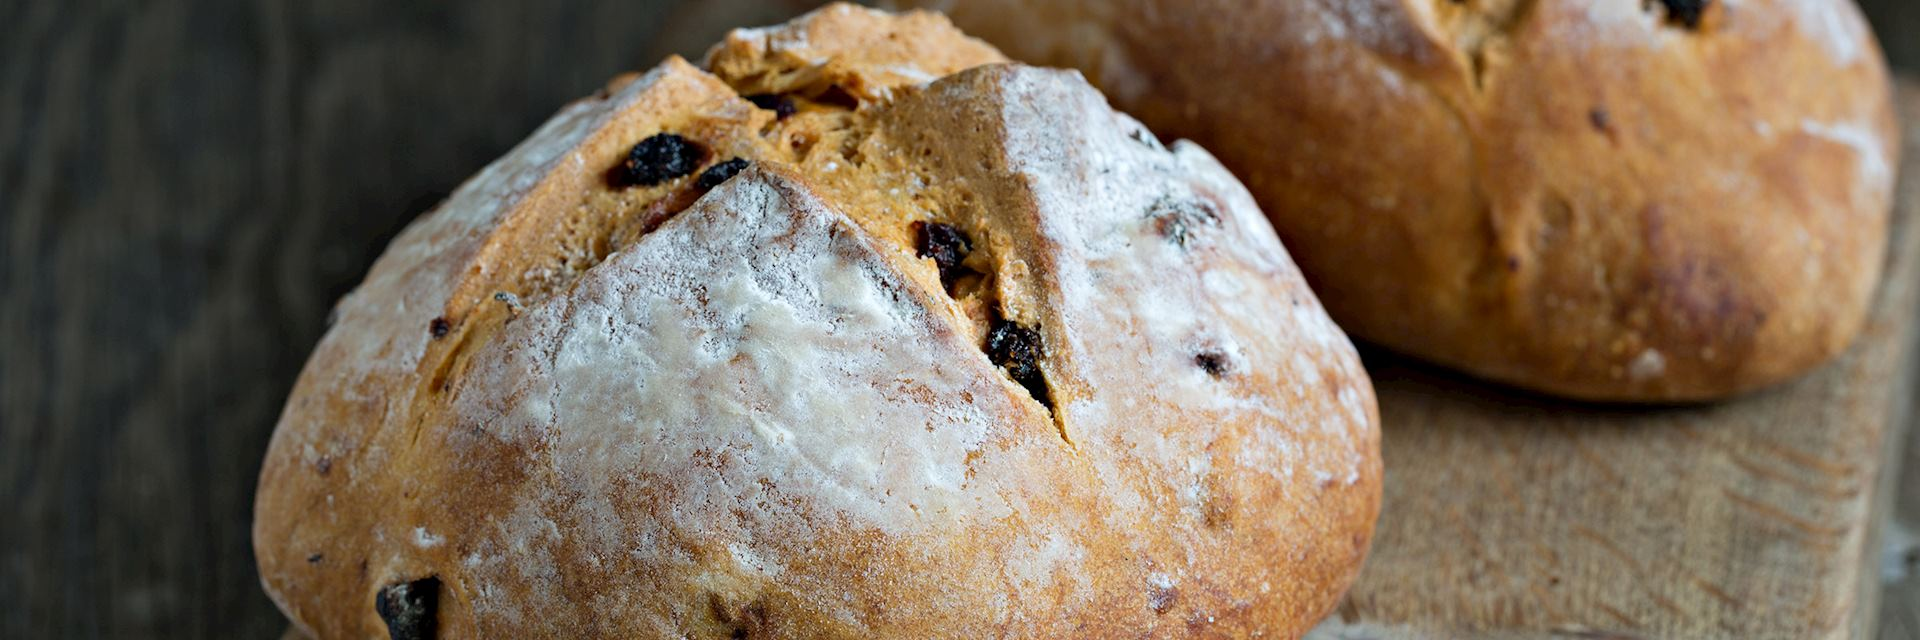 Soda bread, Ireland